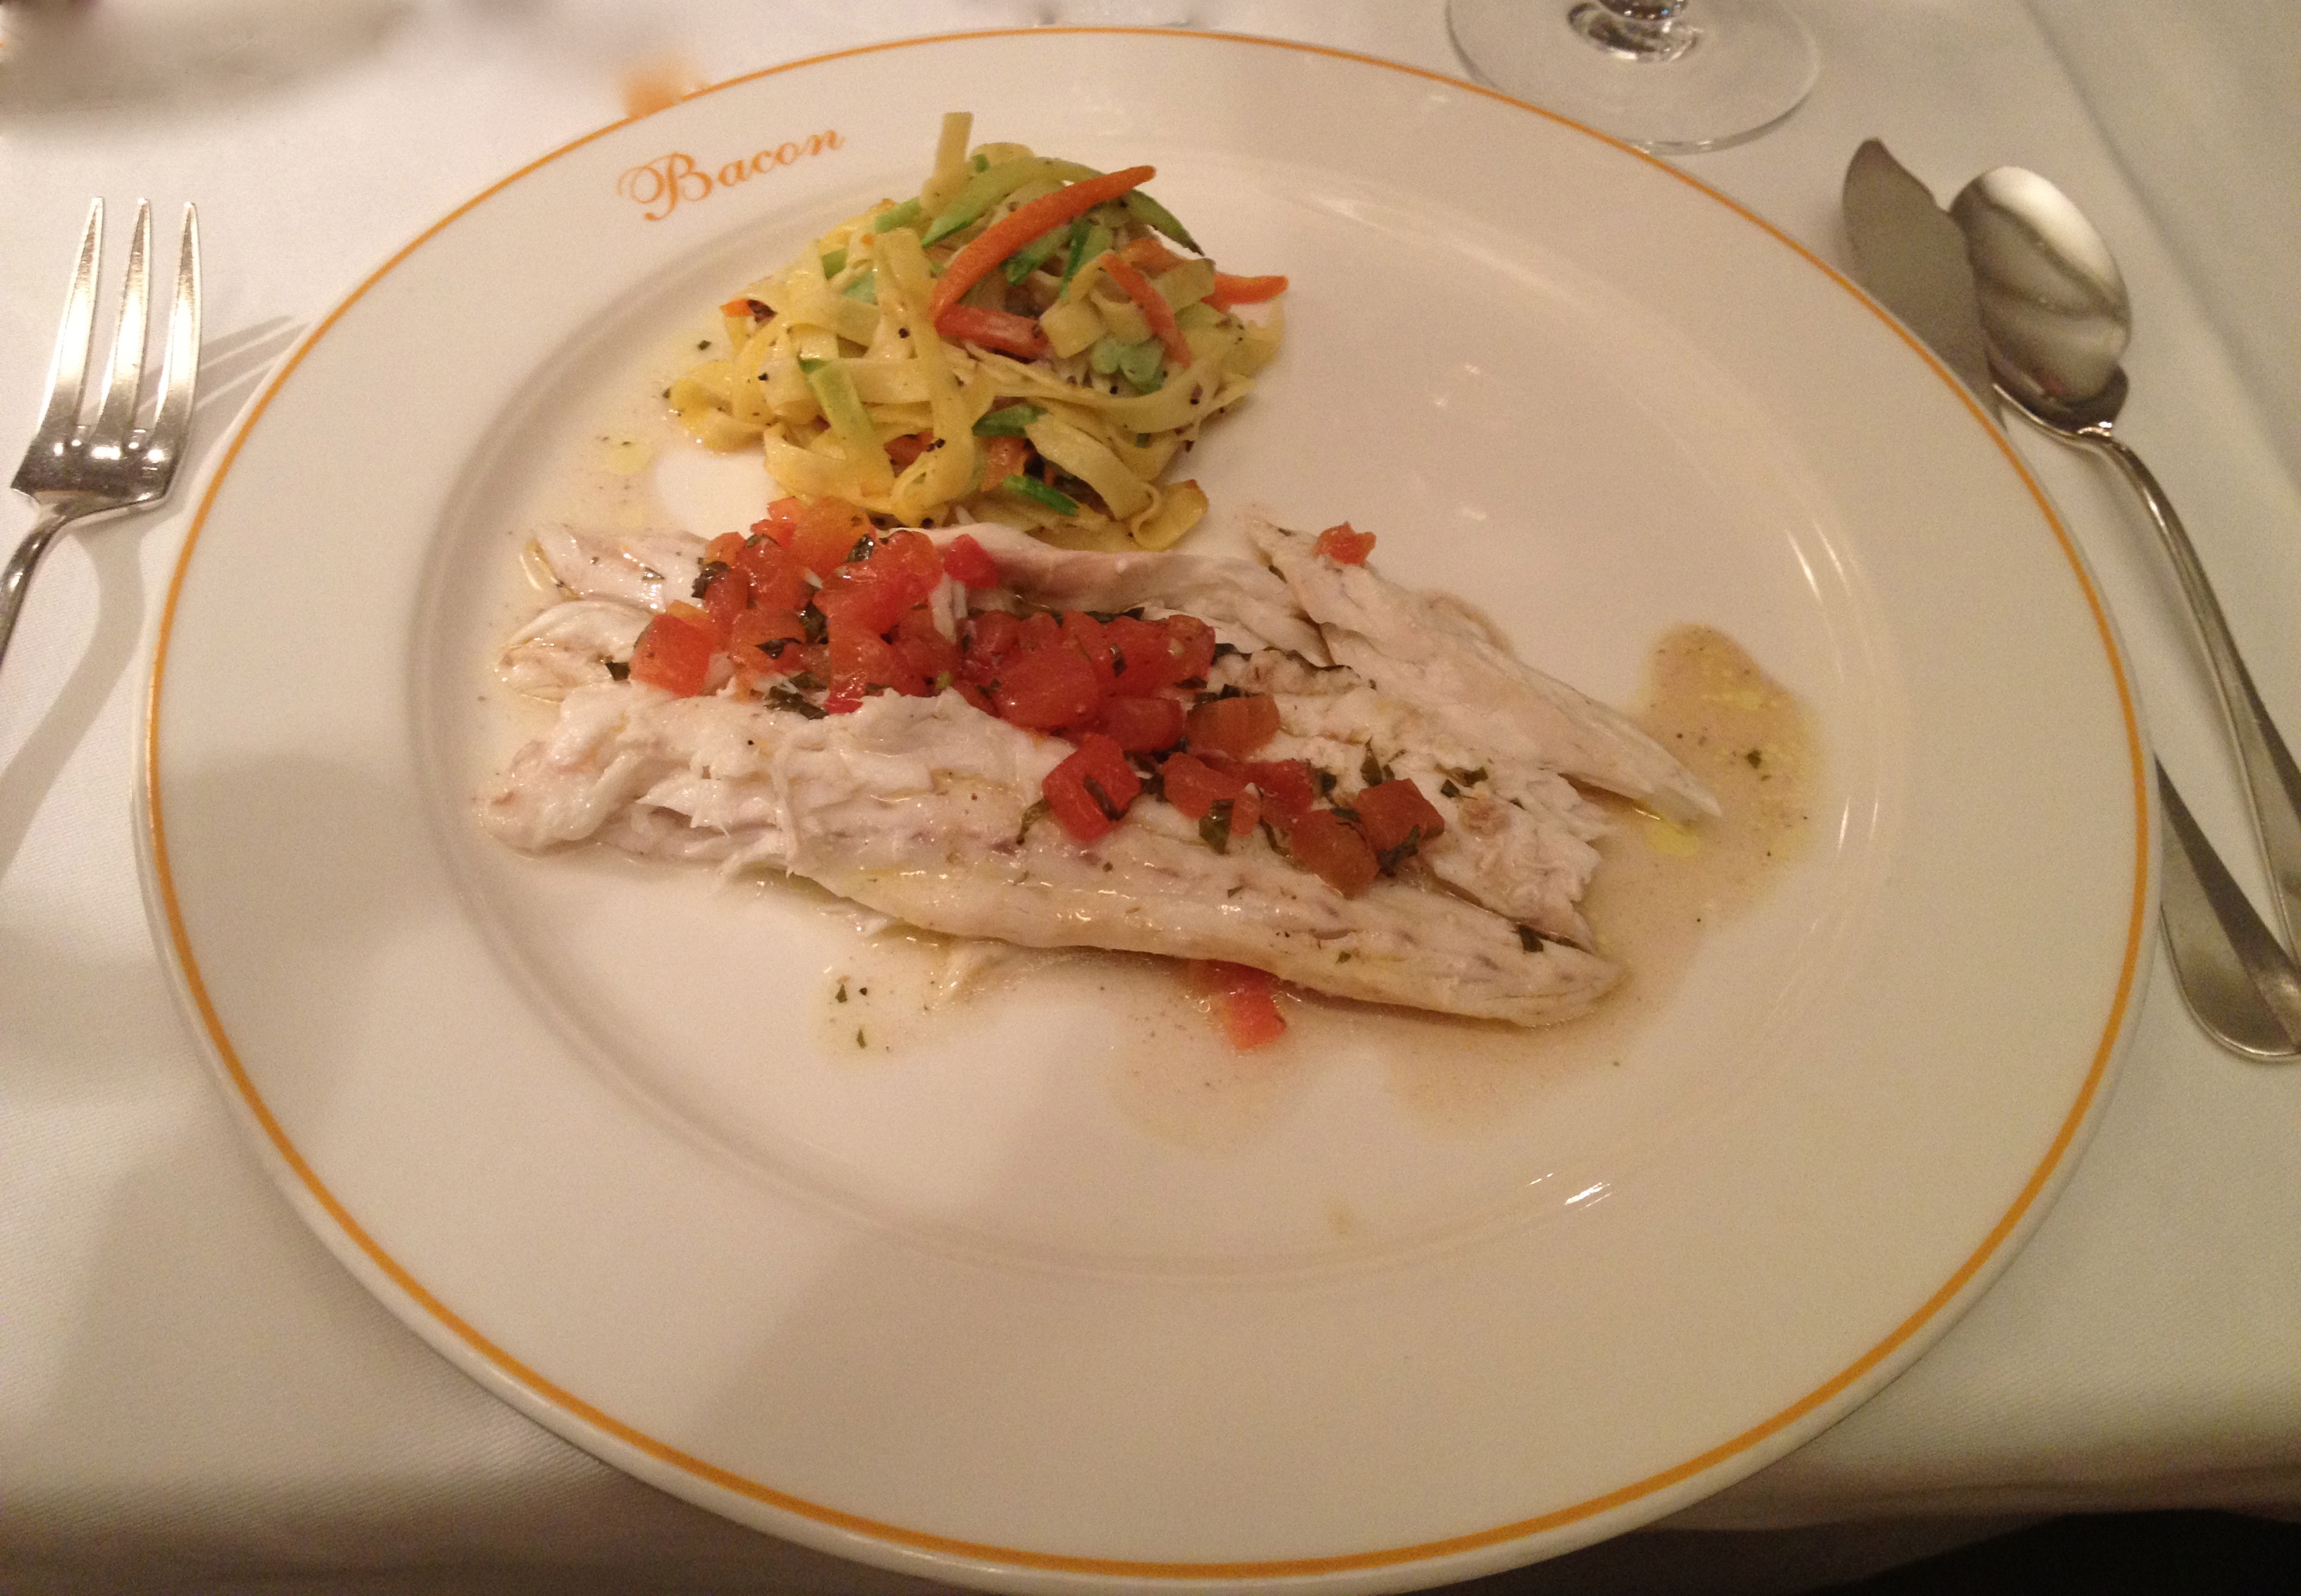 Seabass grandmother style at Bacon